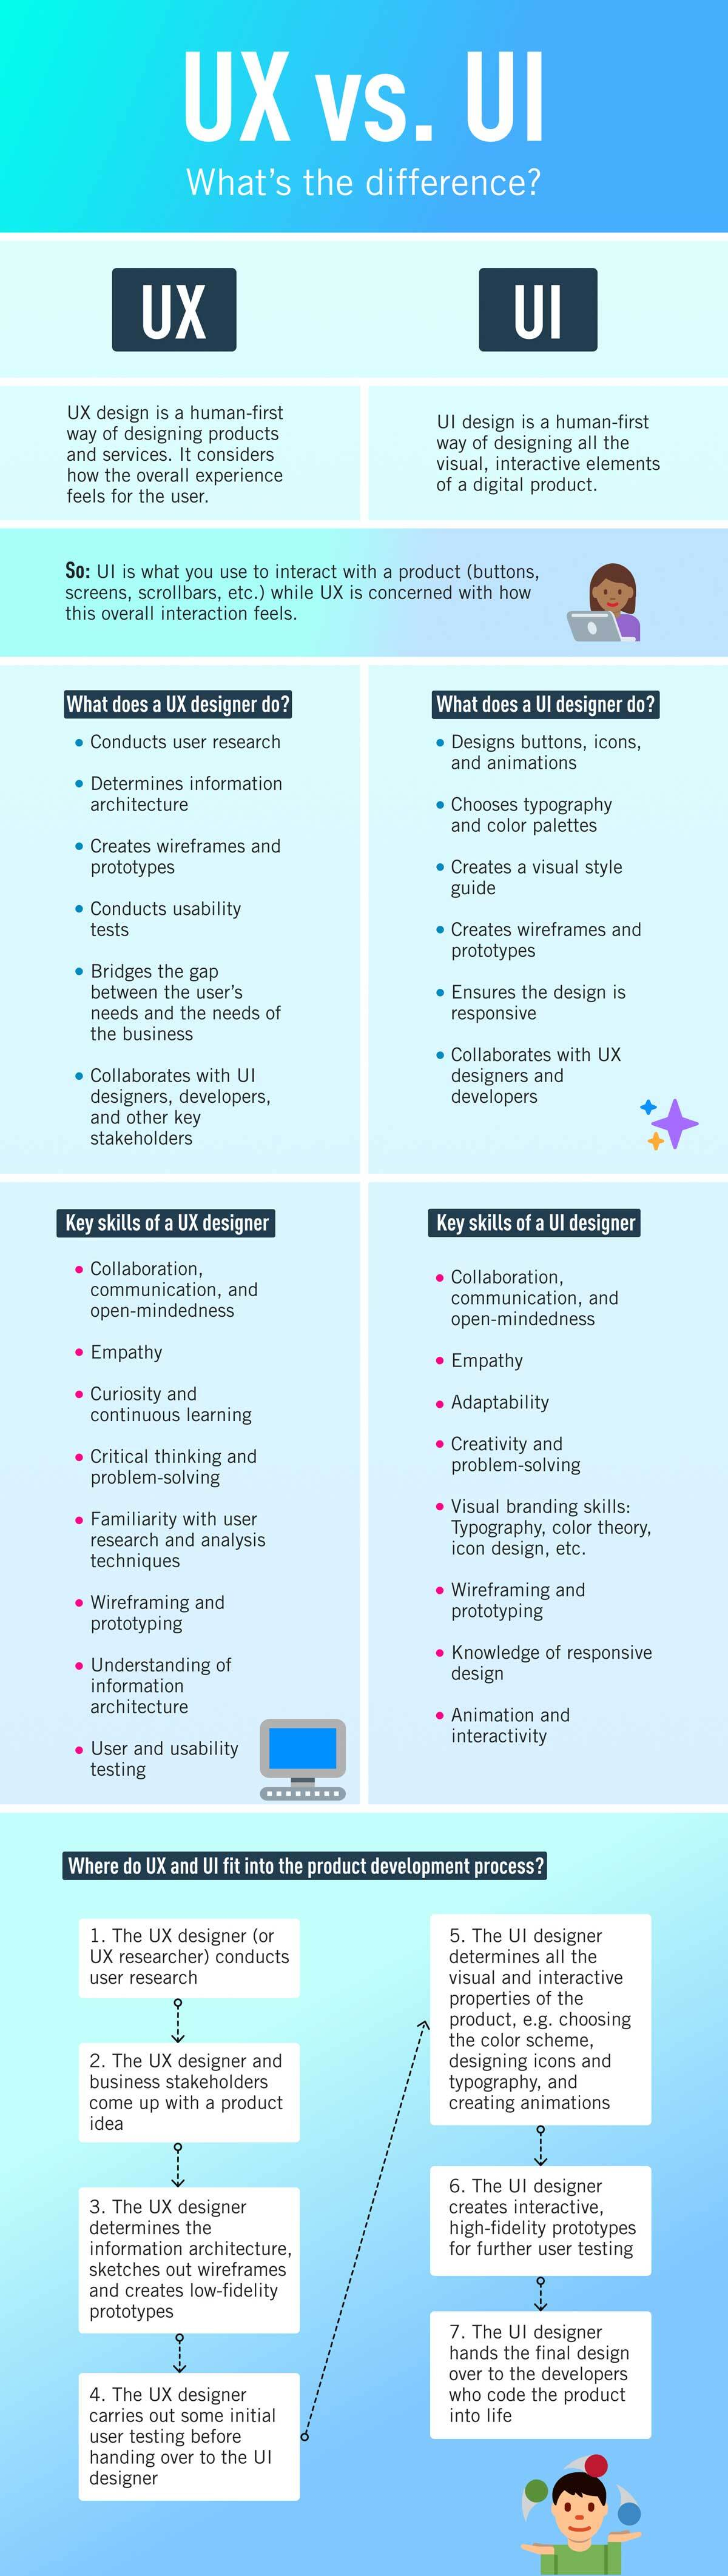 The difference between UX and UI: A visual overview